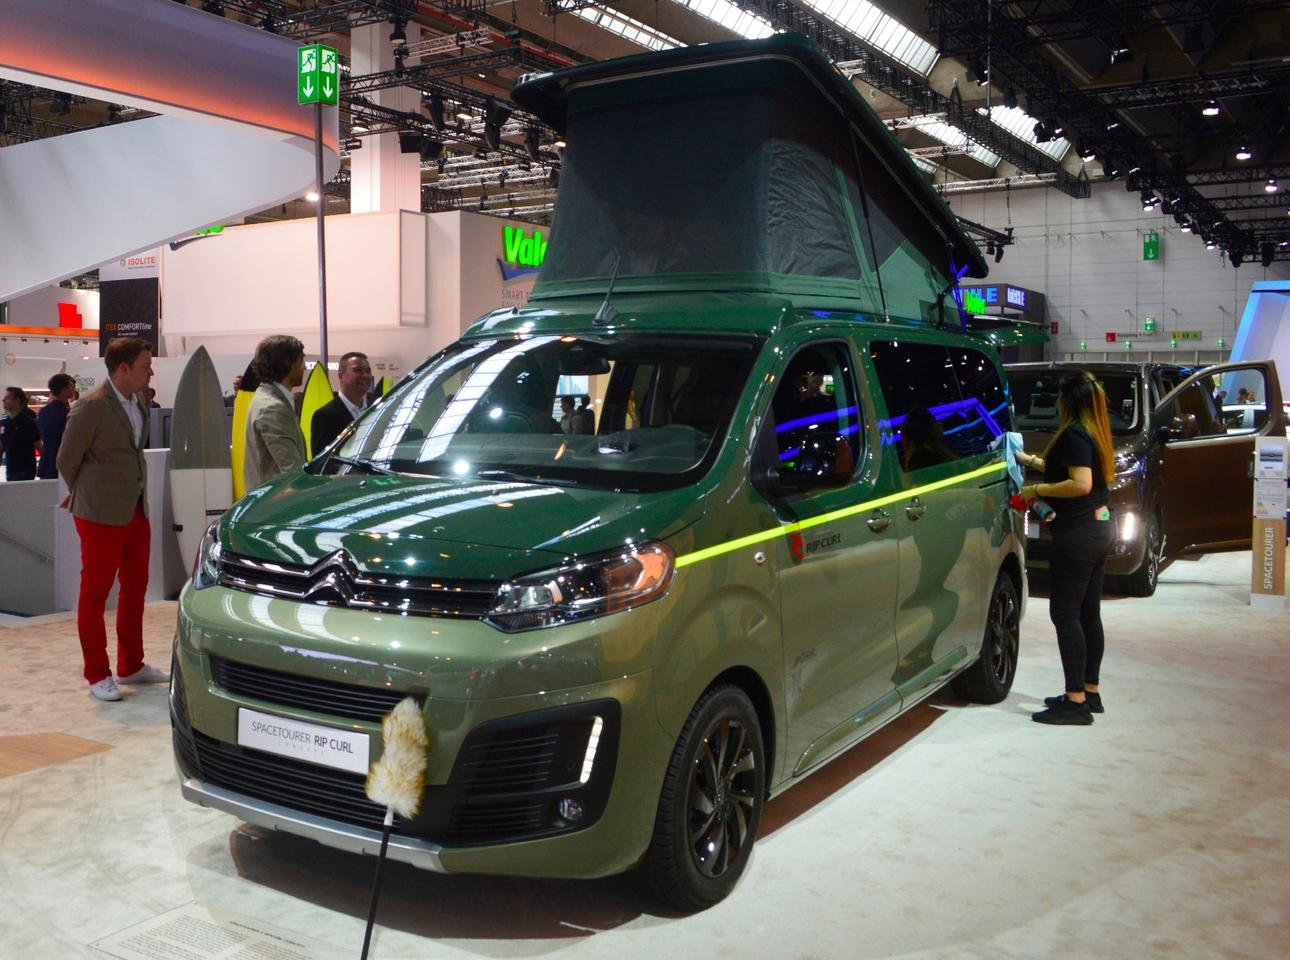 The SpaceTourer Rip Curl Concept is Citroën's idea of a small camper van designed for scouting breaks